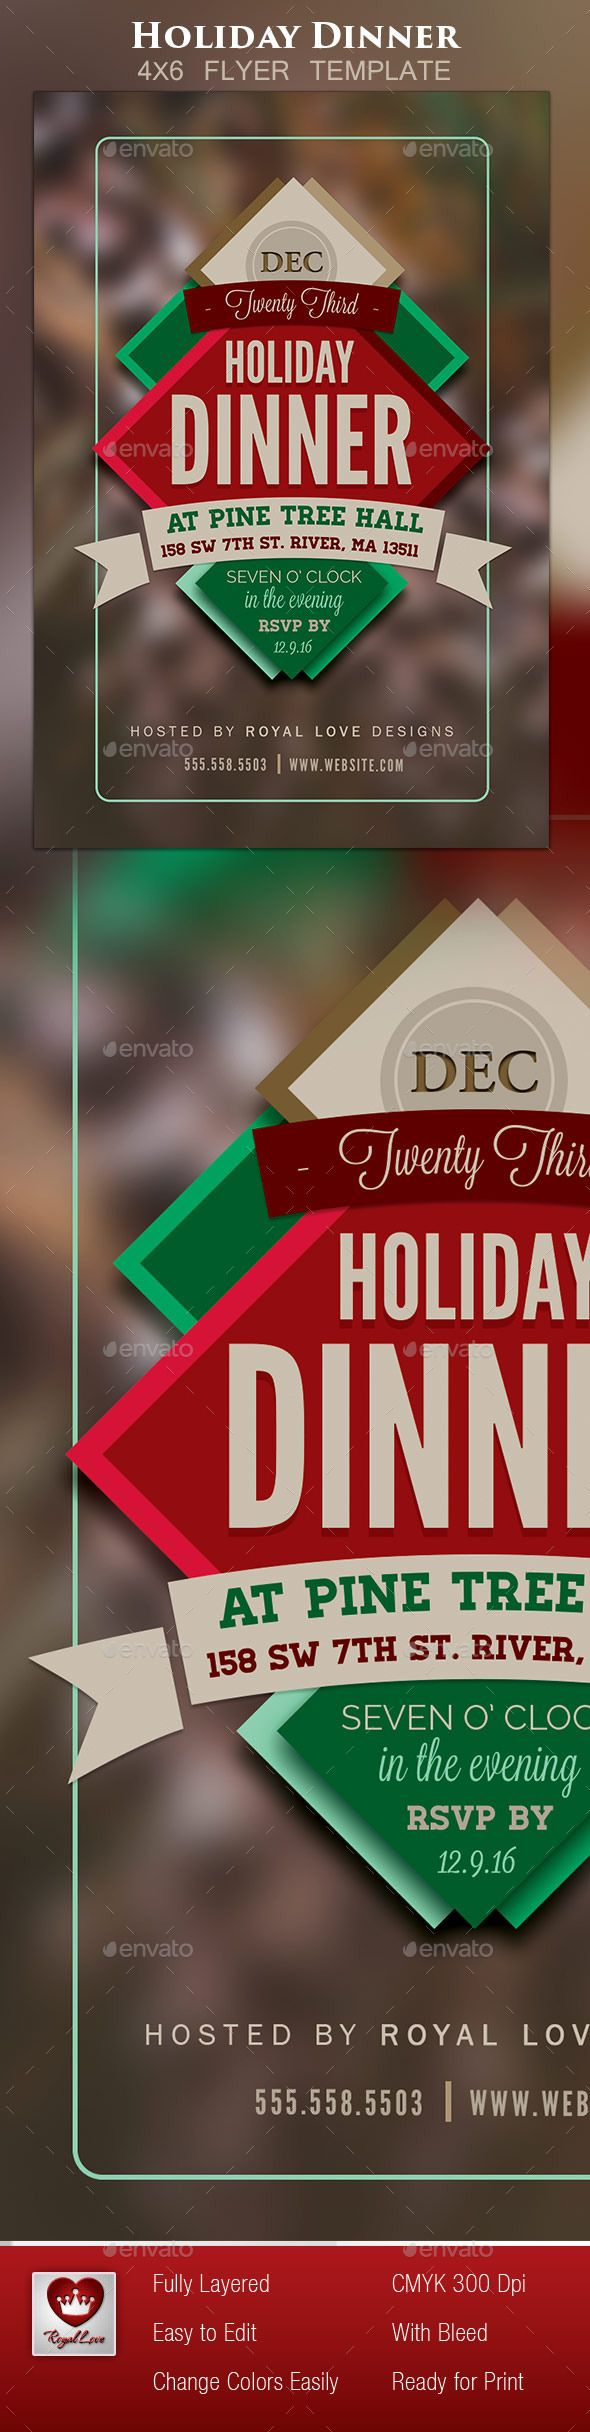 Holiday Dinner Flyer Ii  Dinners Template And Holidays